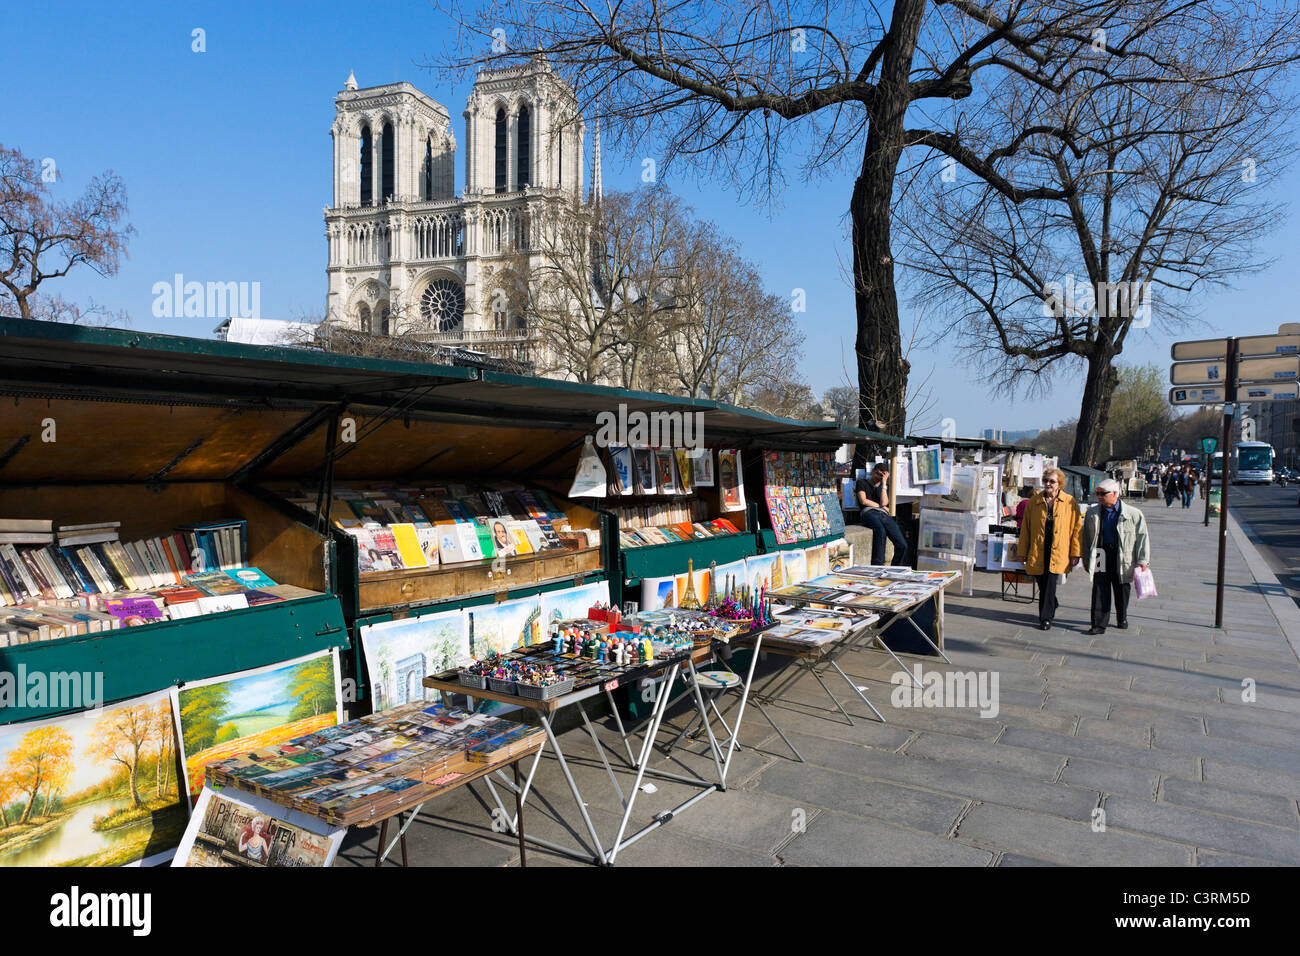 Booksellers stalls along the banks of the River Seine on the Quai Saint-Michel with Notre Dame Cathedral behind, - Stock Image